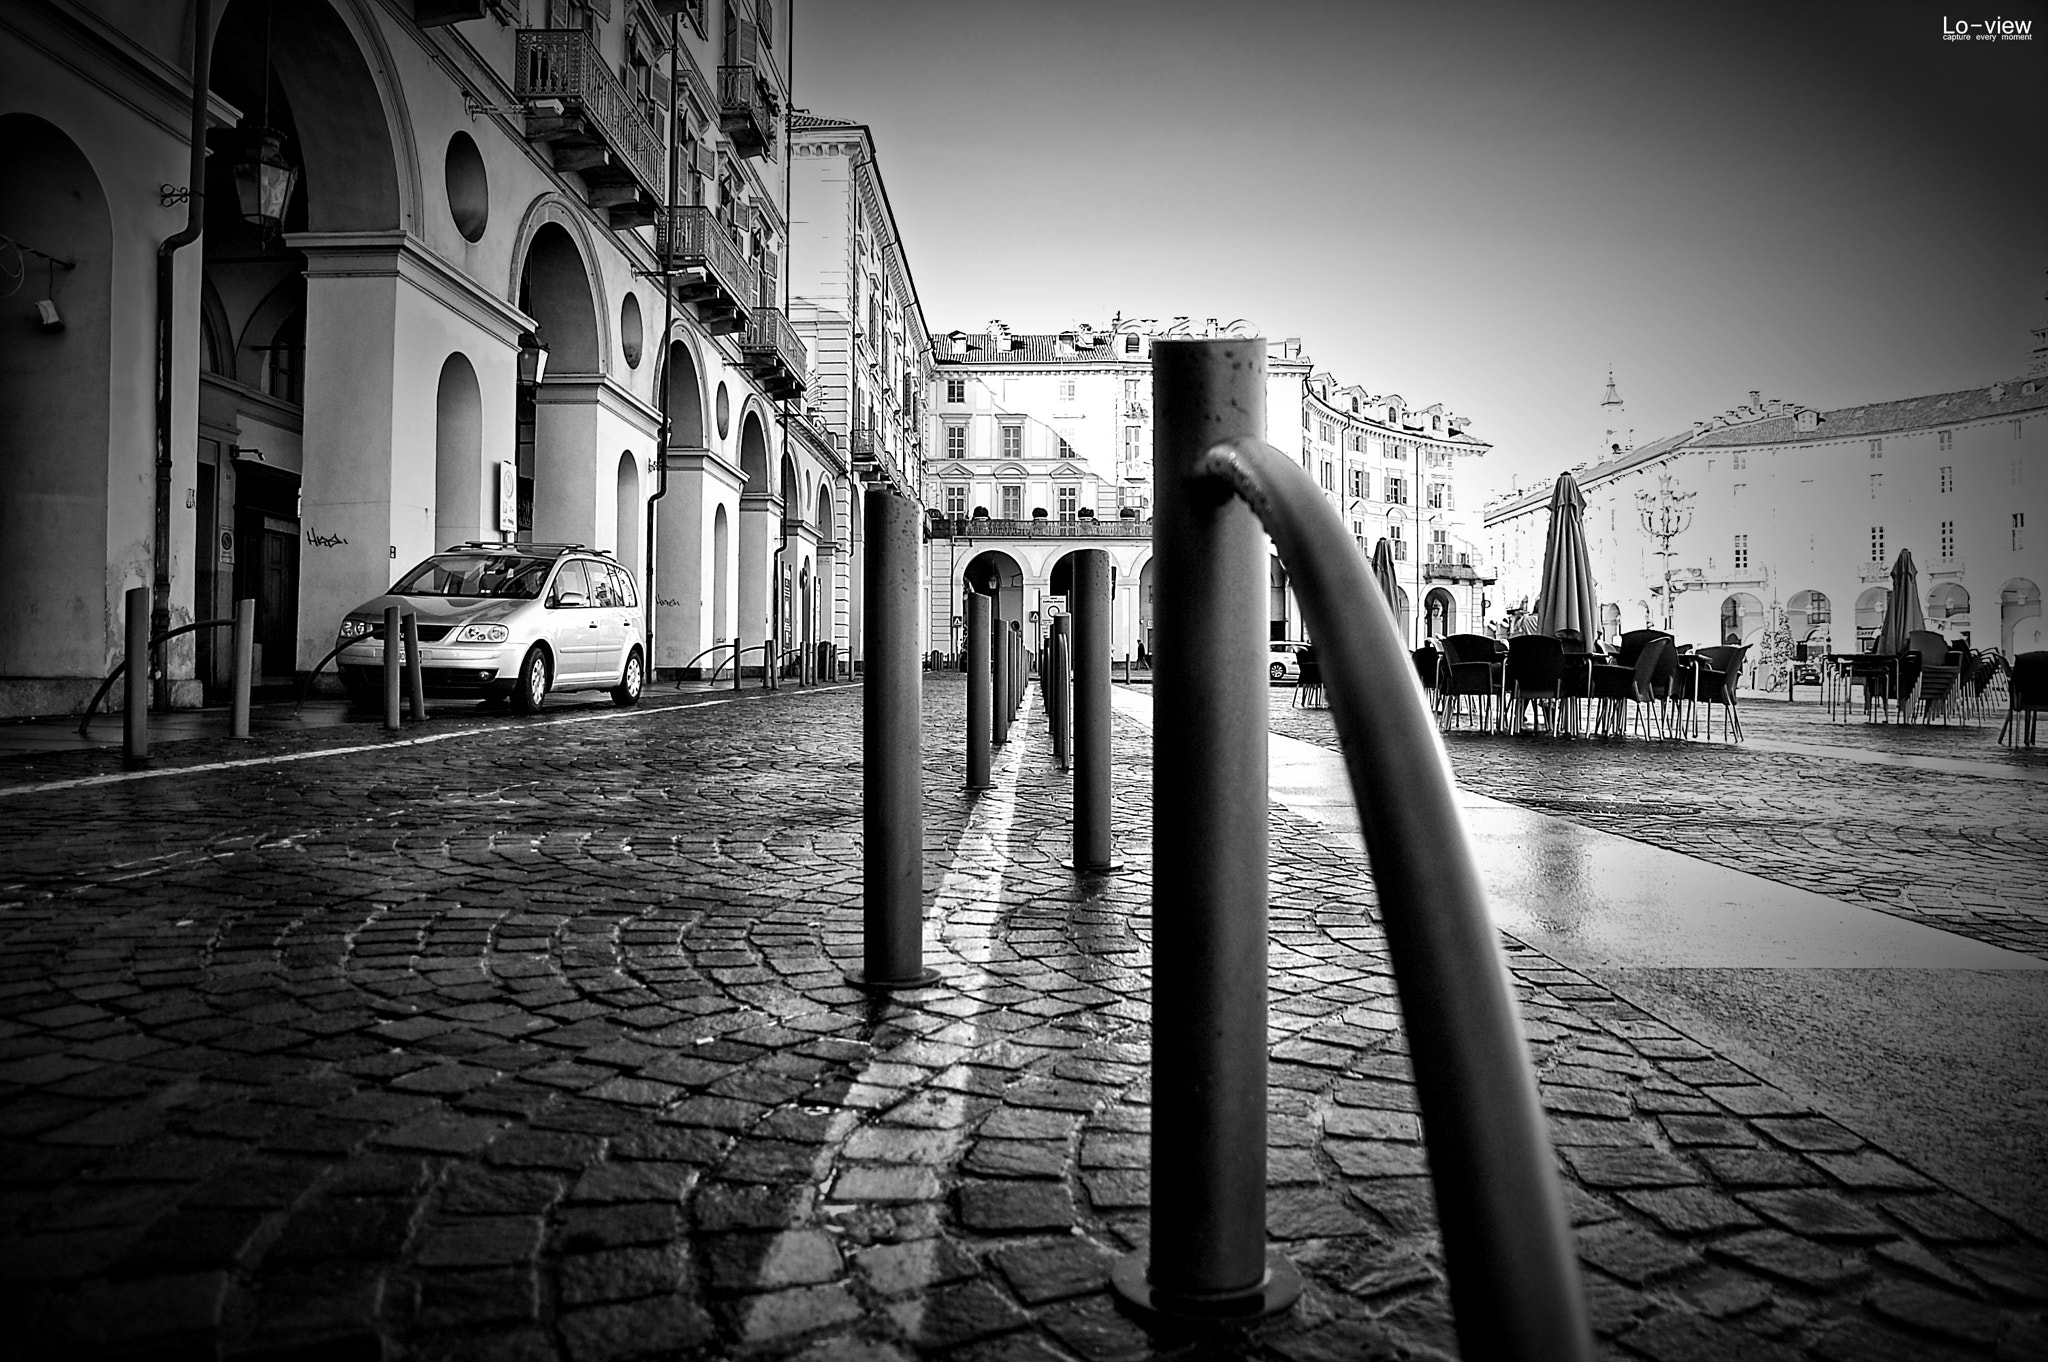 Photograph My Town by Lorenzo Ieva on 500px